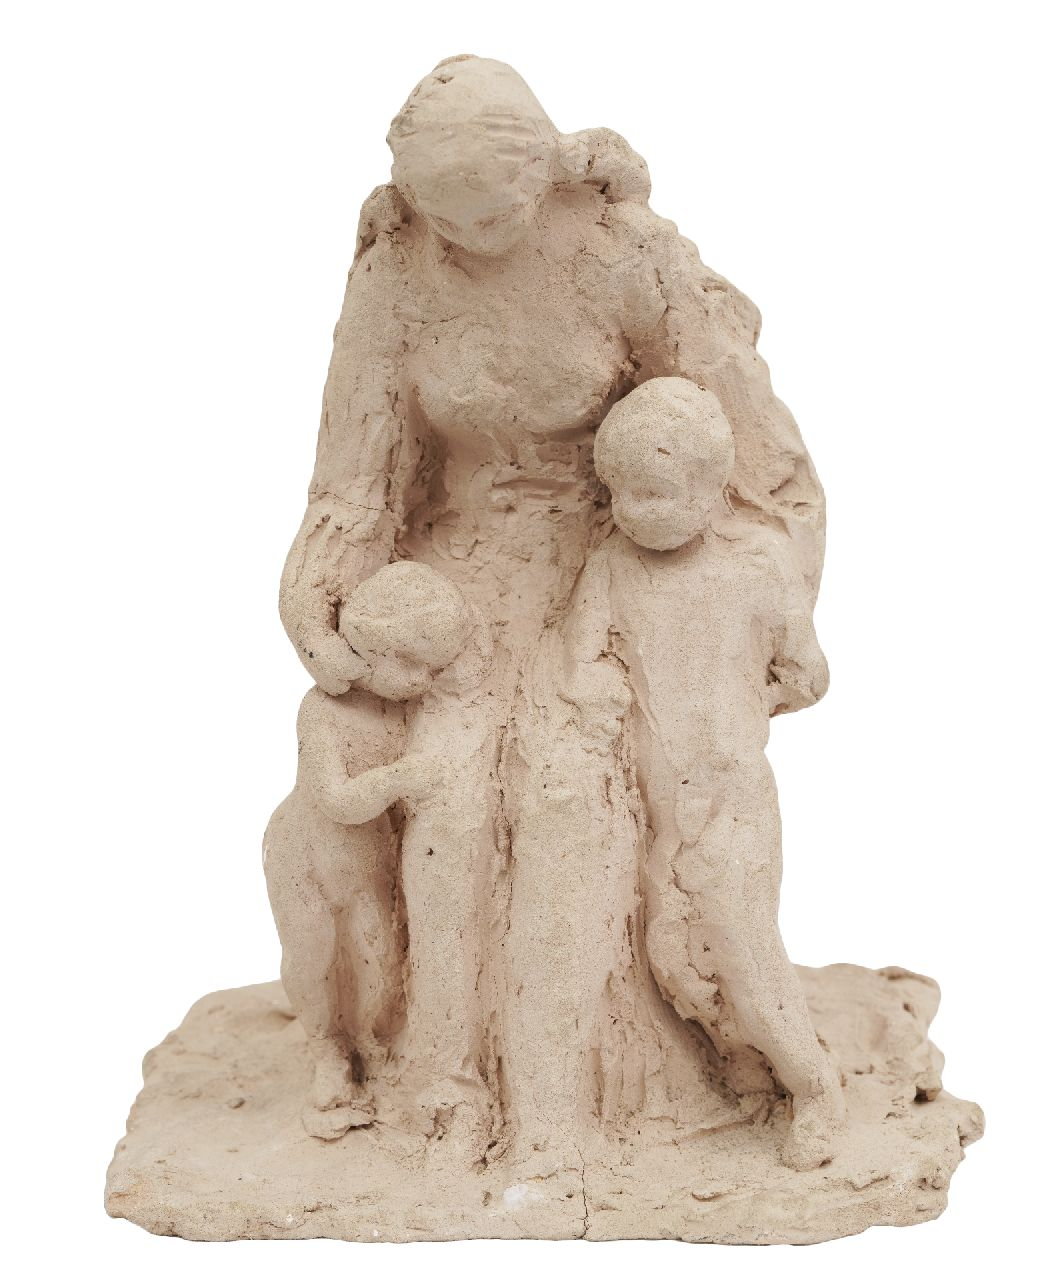 Andriessen (toegeschreven aan) M.S.  | Marie Silvester 'Mari' Andriessen (toegeschreven aan) | Sculptures and objects offered for sale | Mother with two children, unbaked clay 23.0 x 16.5 cm, signed under the base with initials and dated '60